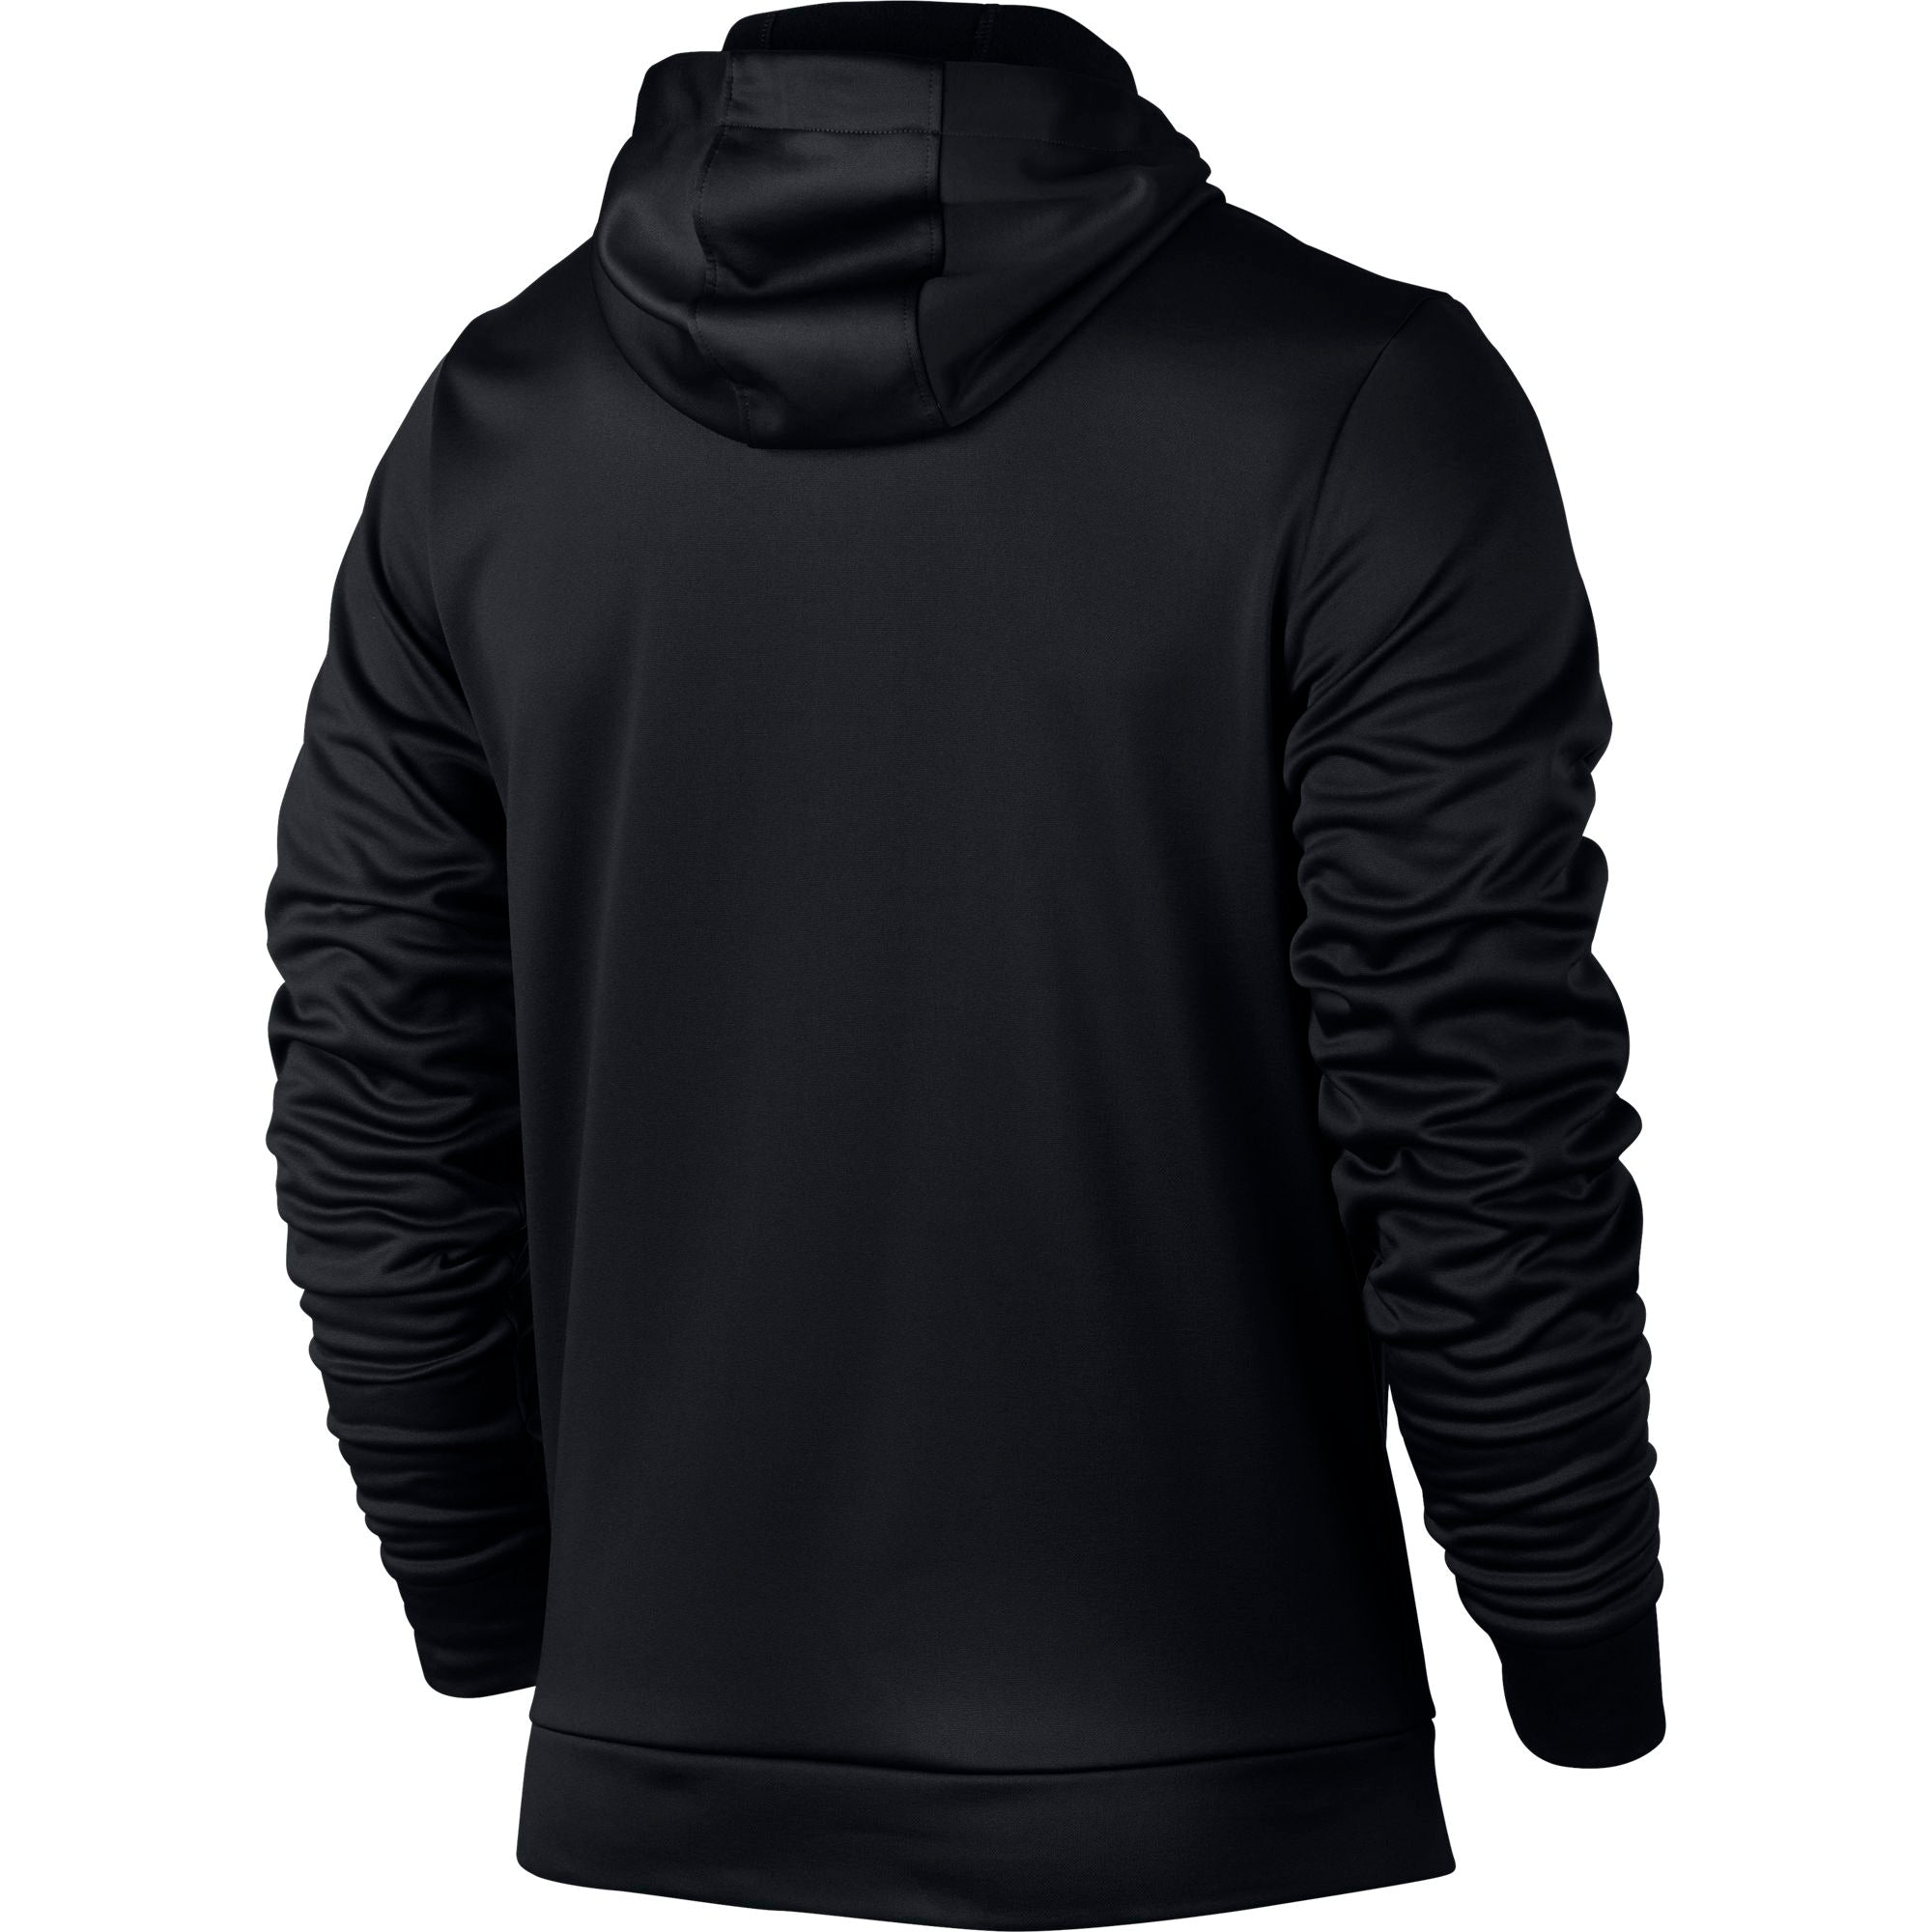 Nike Jordan Training Therma 23 Alpha Full-Zip Hoodie - Black/Anthracite